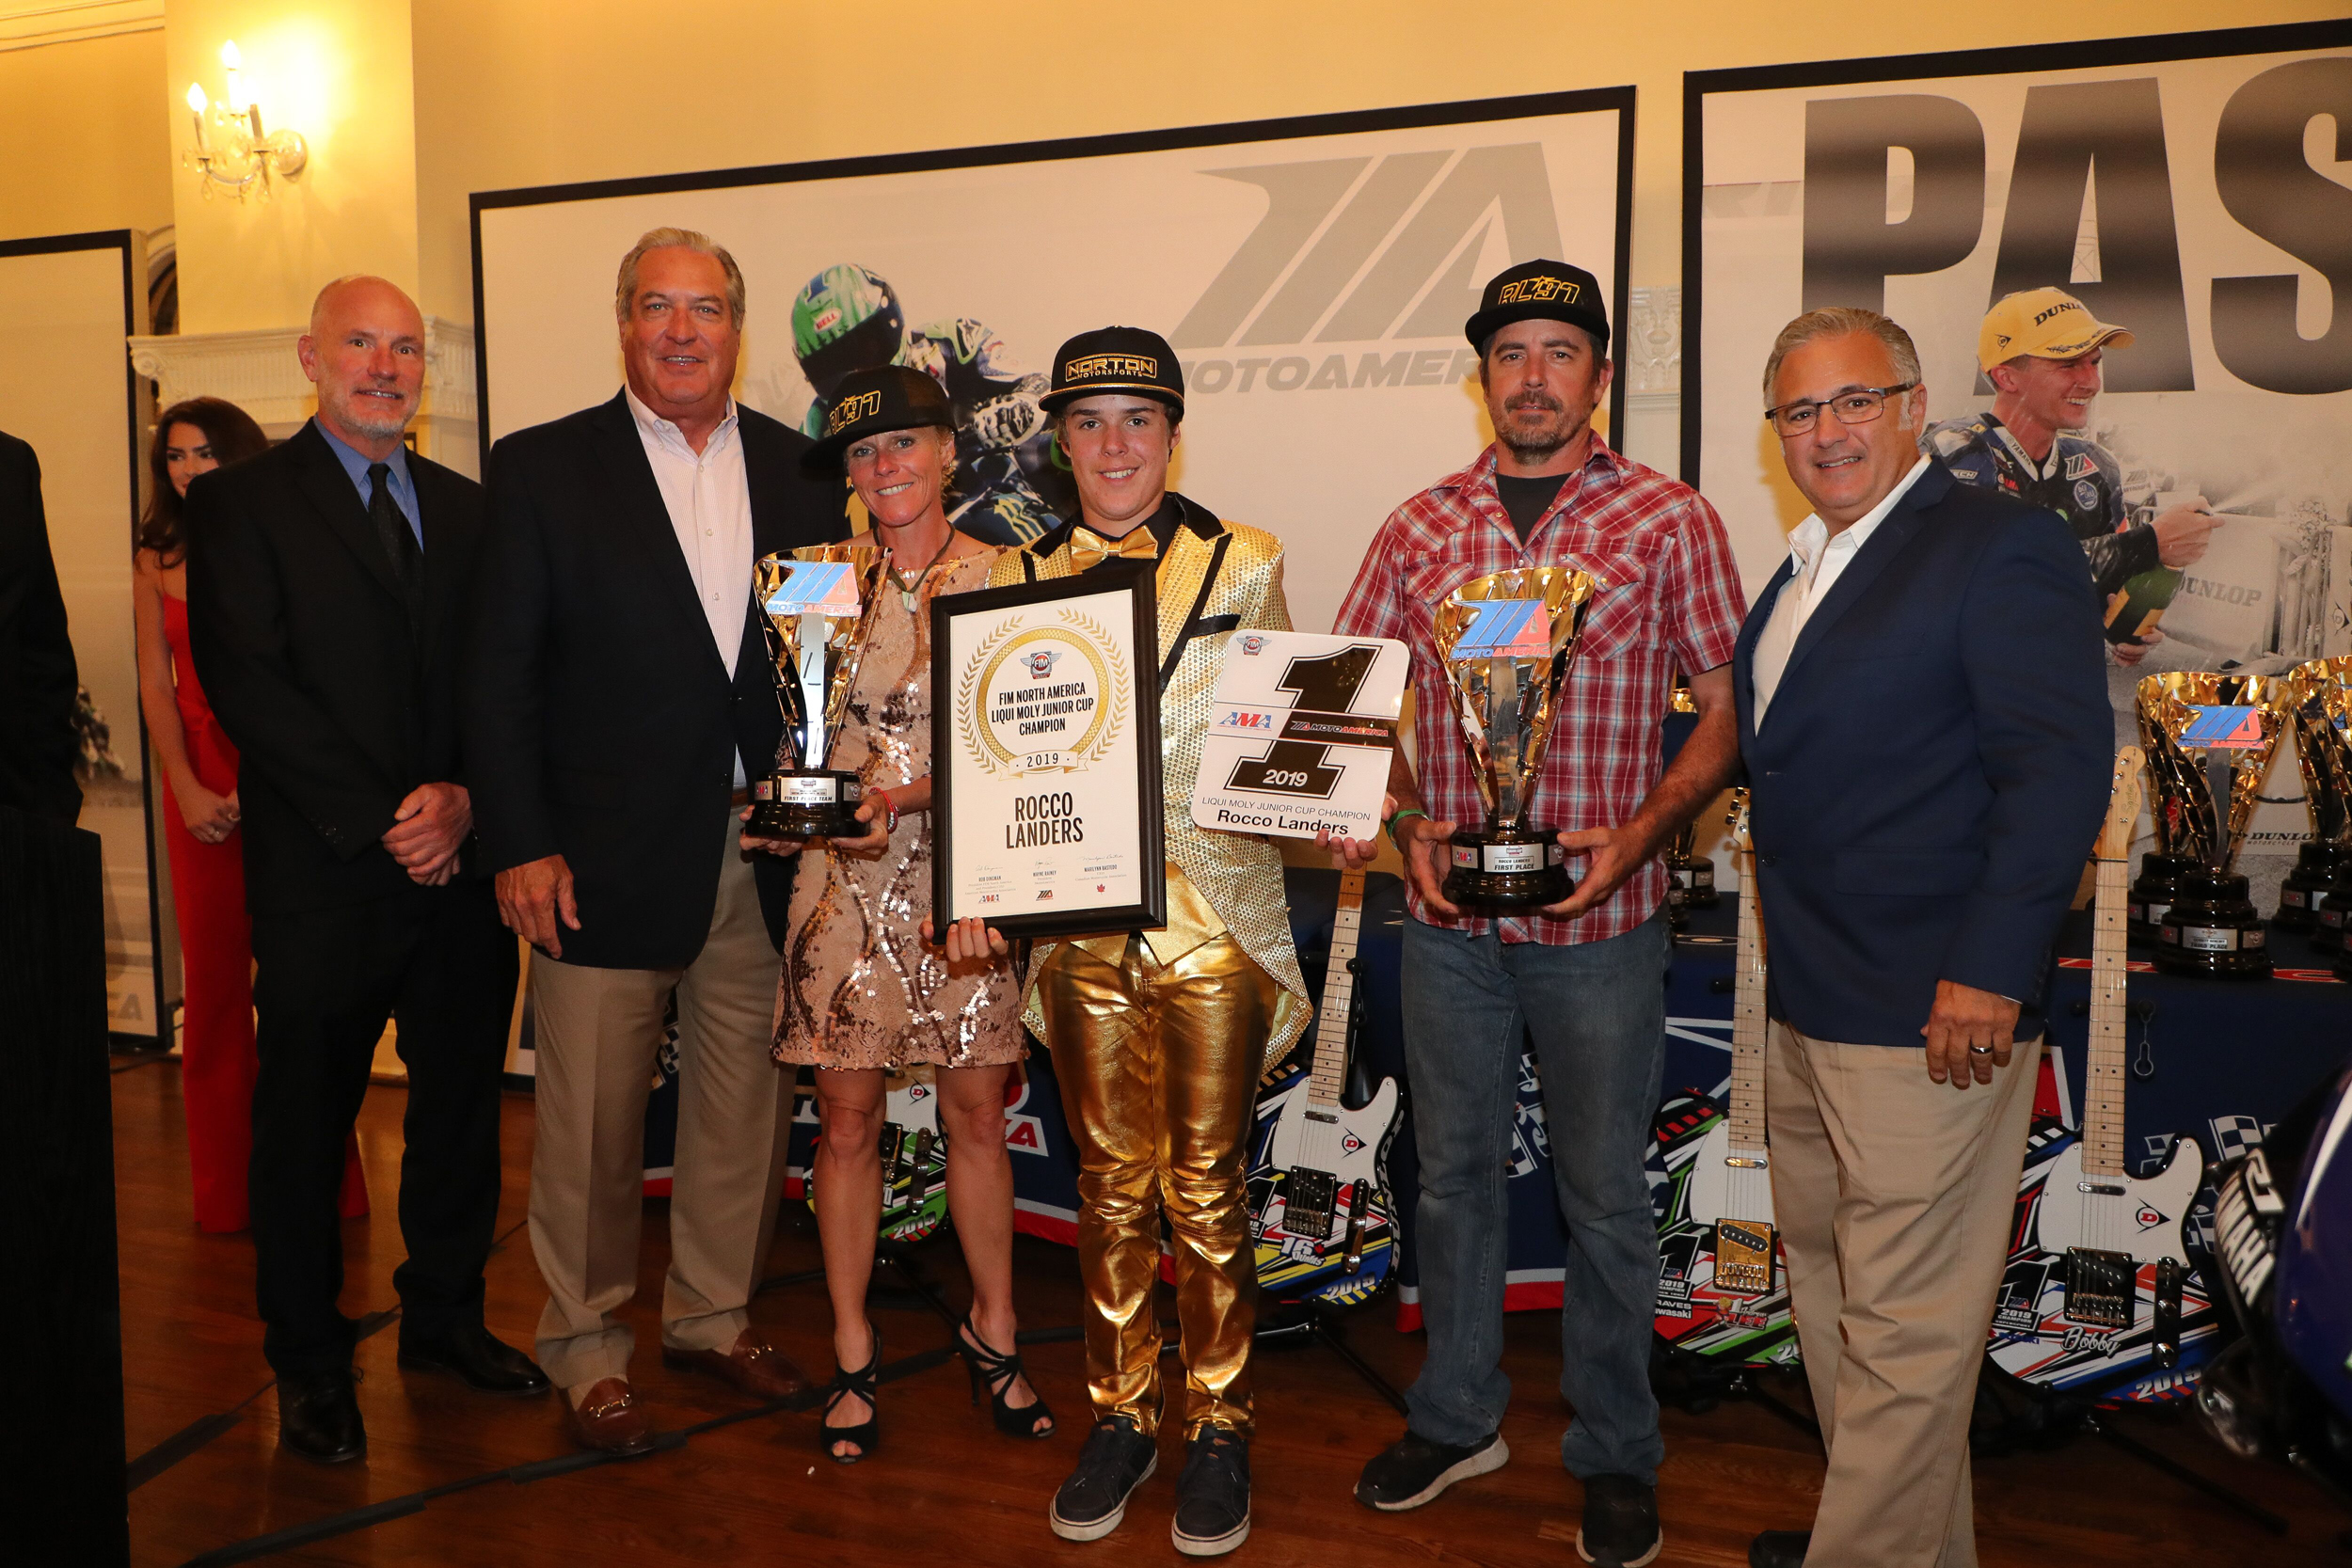 190925 Stoney Landers and Liqui Moly's Vinny Russo celebrate Rocco's Liqui Moly Junior Cup title.|Photo by Brian J. Nelson